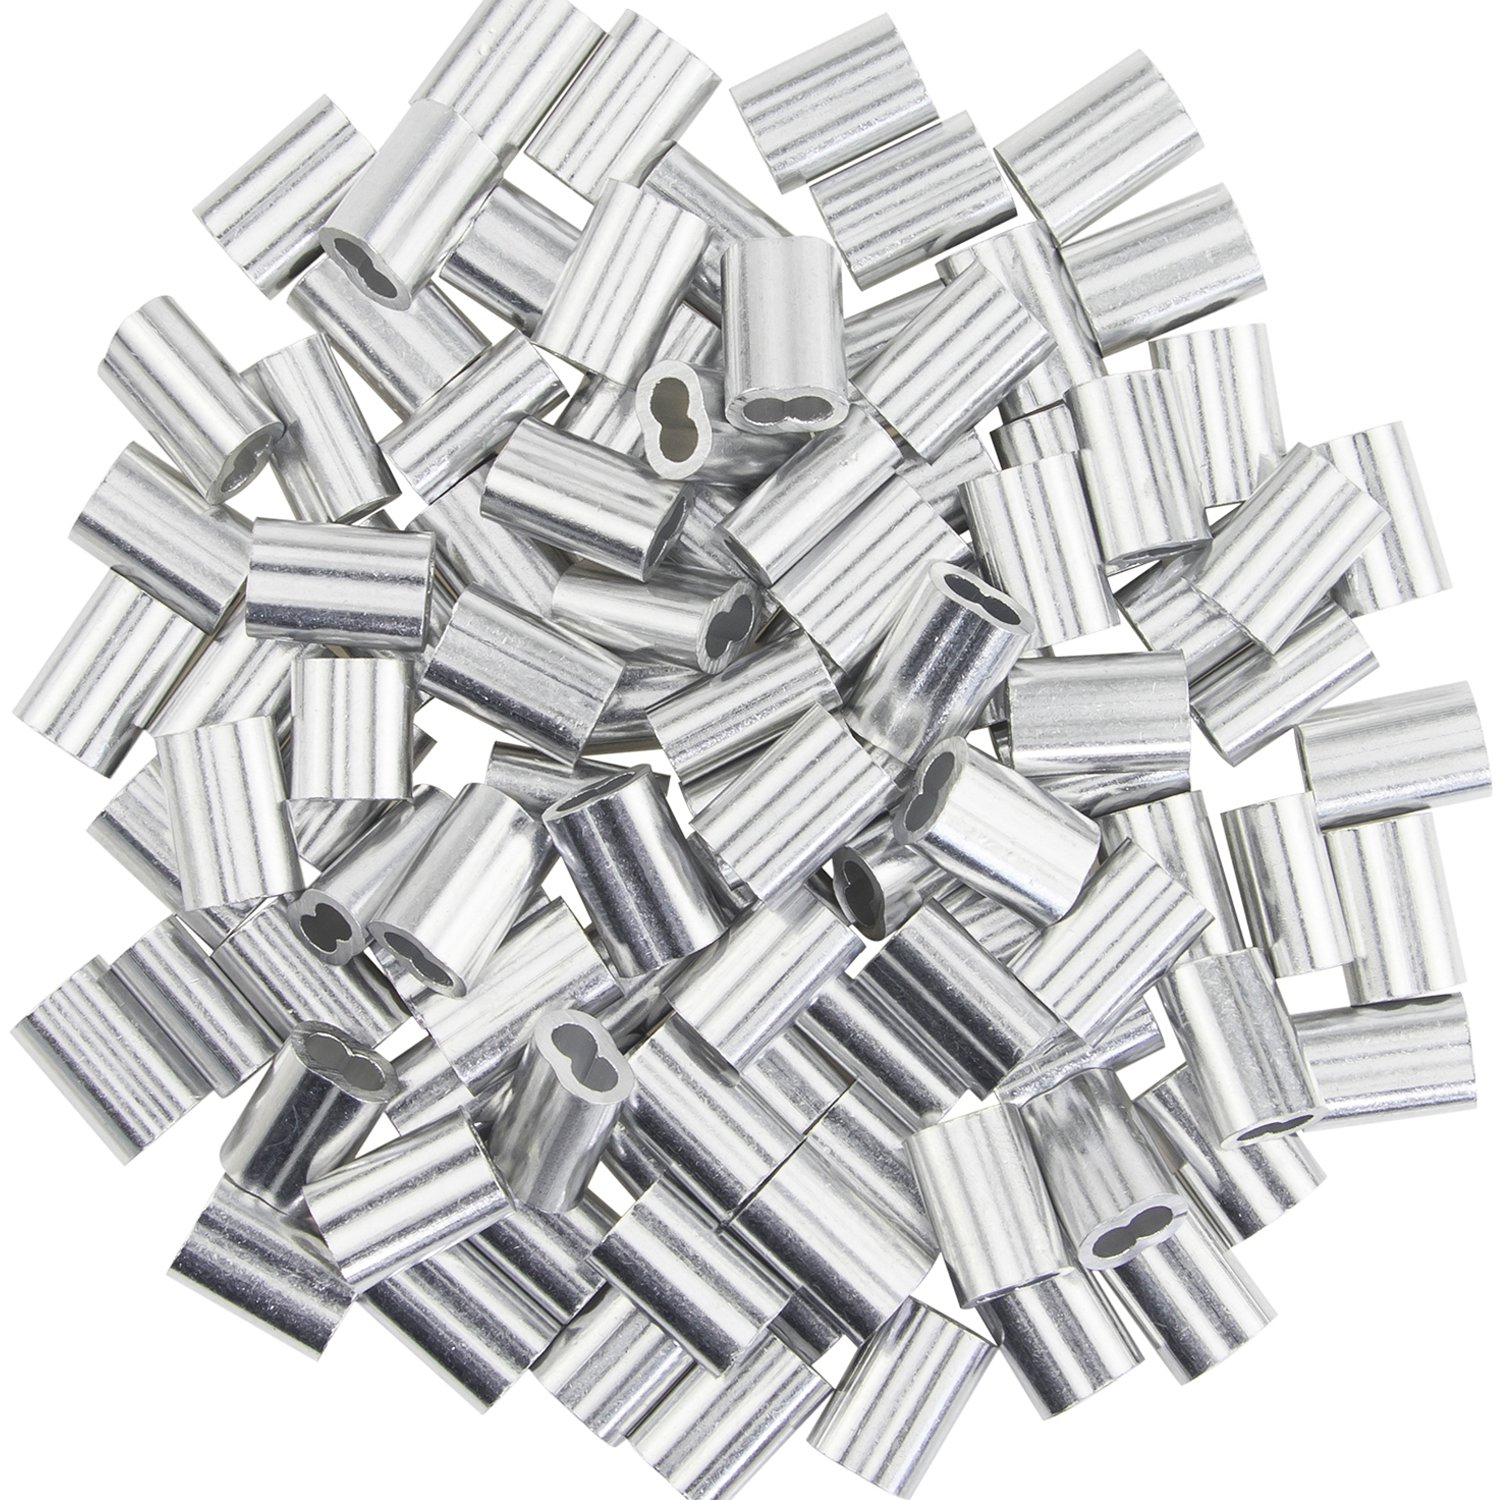 100pcs Aluminum Crimping Loop Sleeve for 2.5mm//0.1inch Wire Rope and Cable